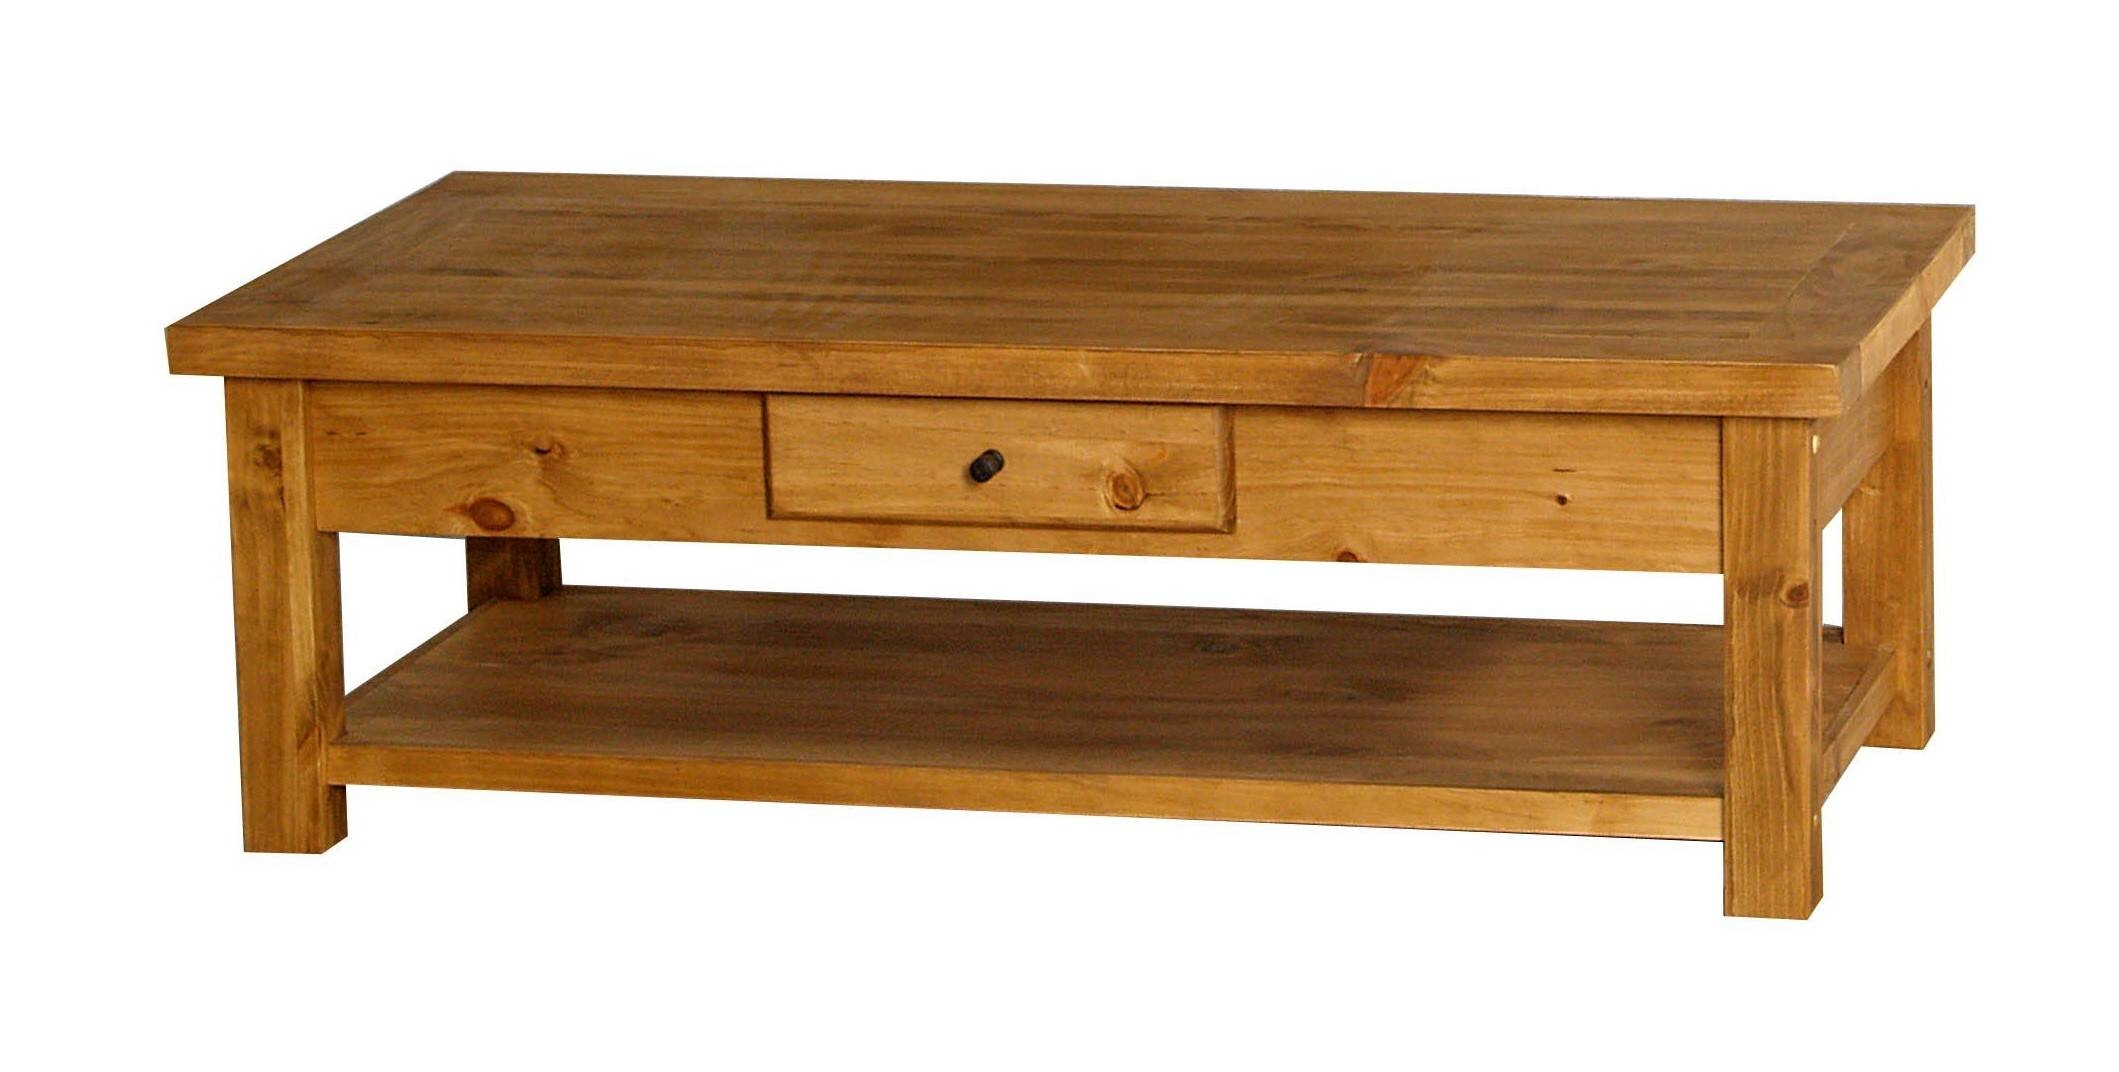 Top of pine coffee tables with storage